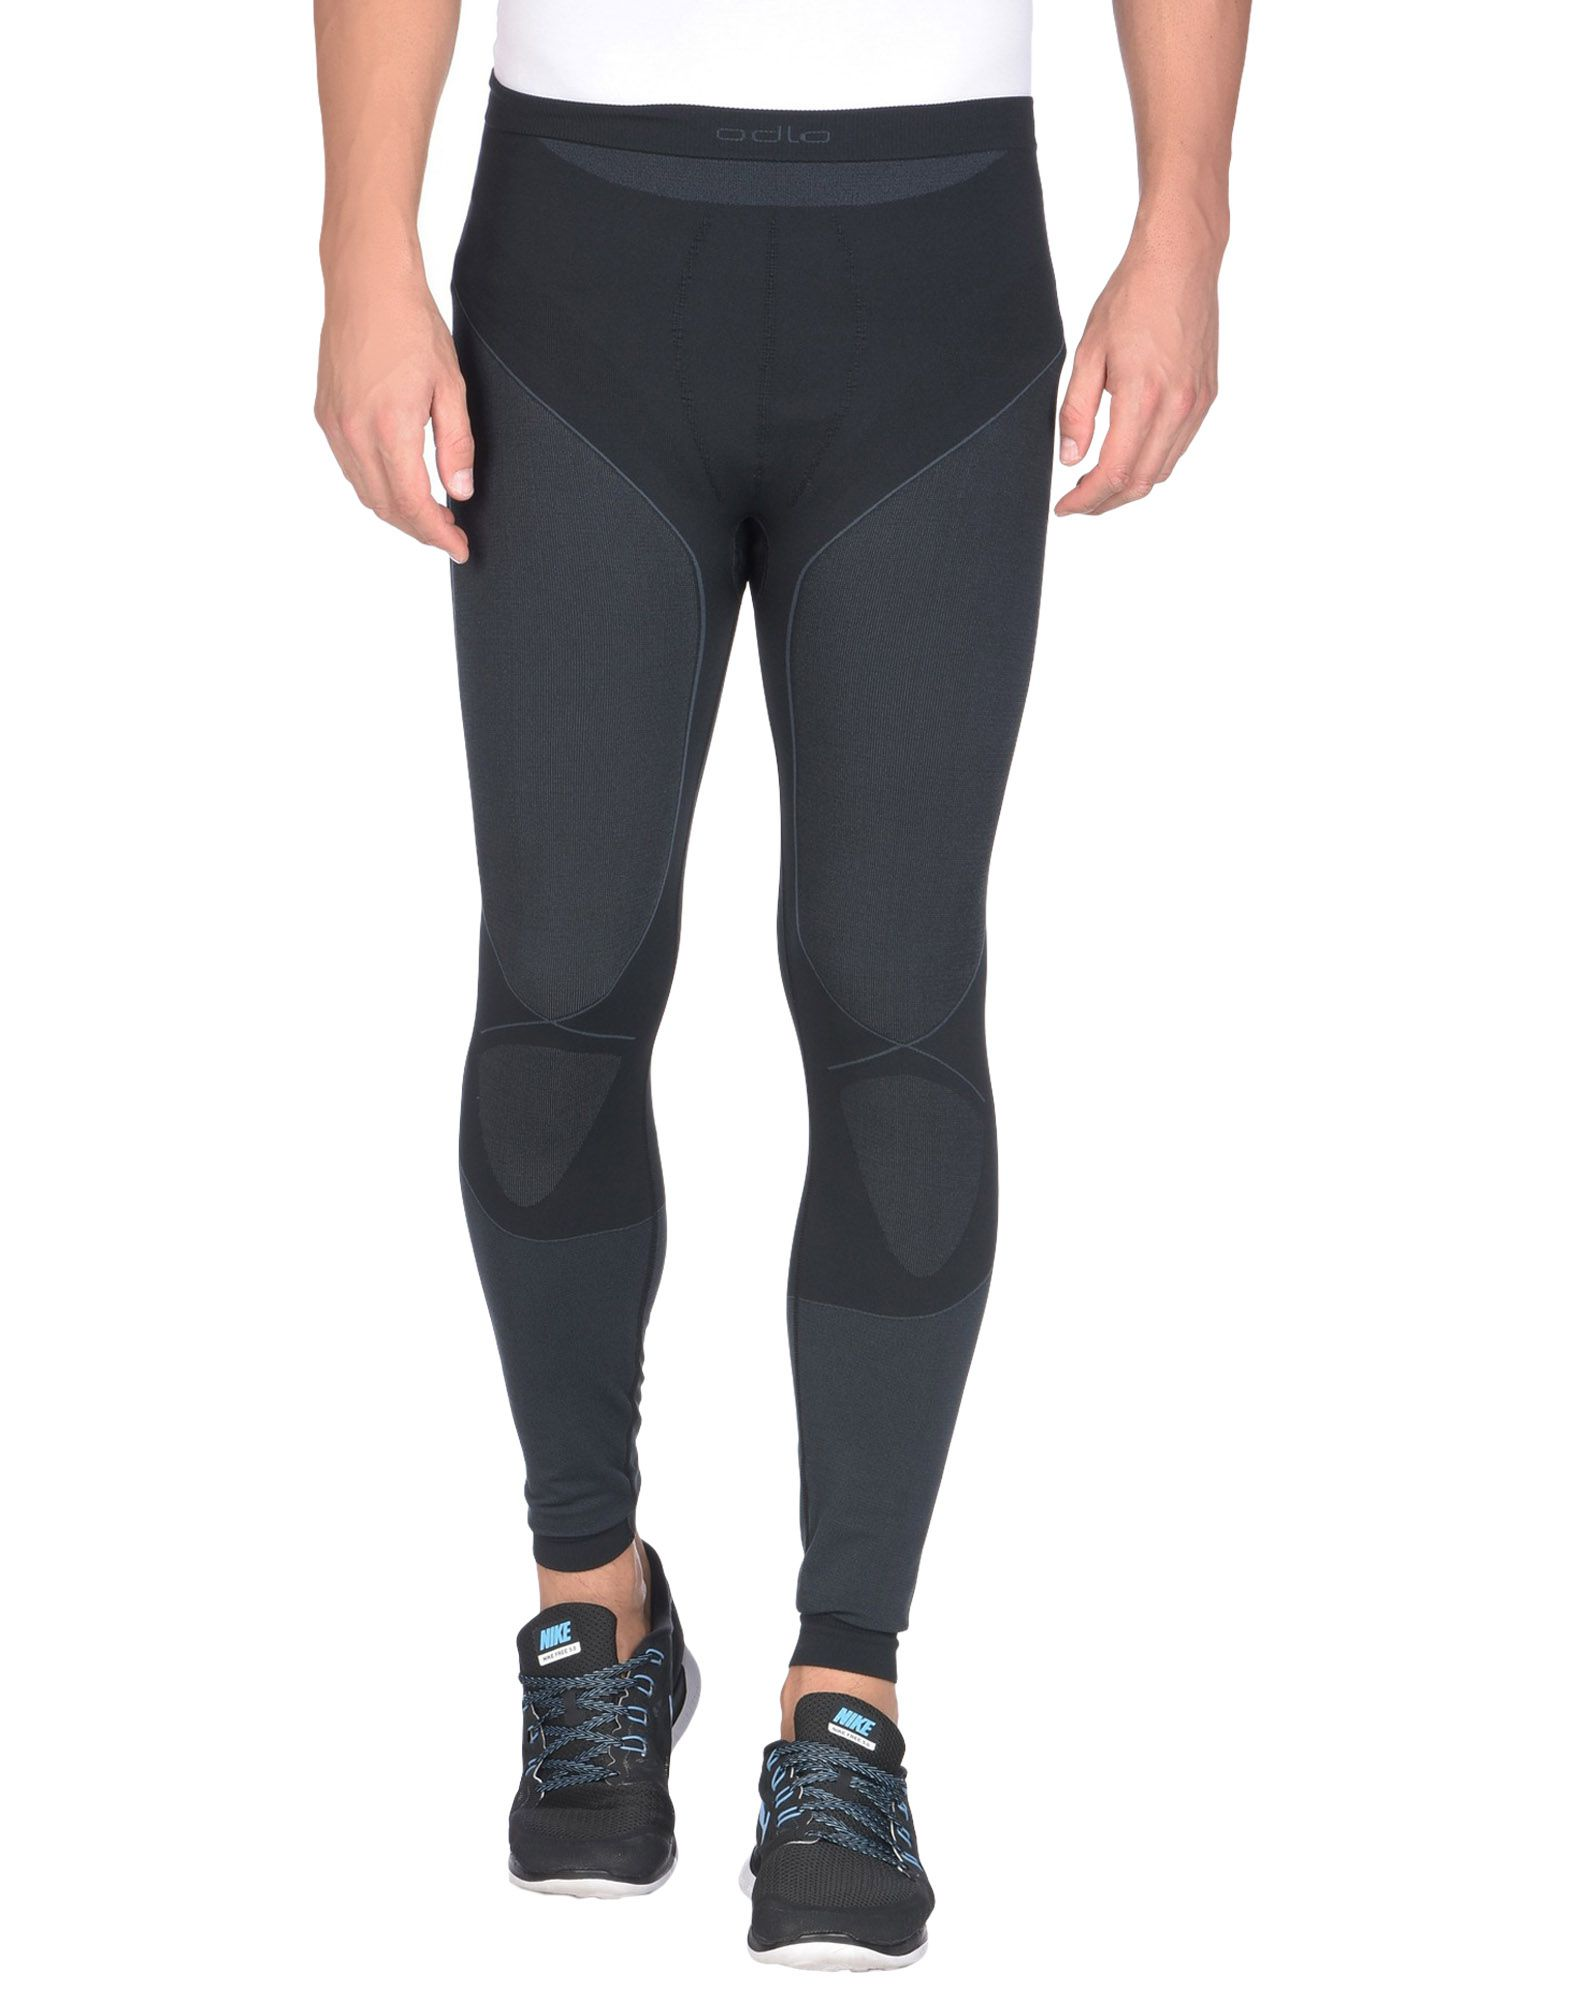 ODLO Athletic Pant in Black